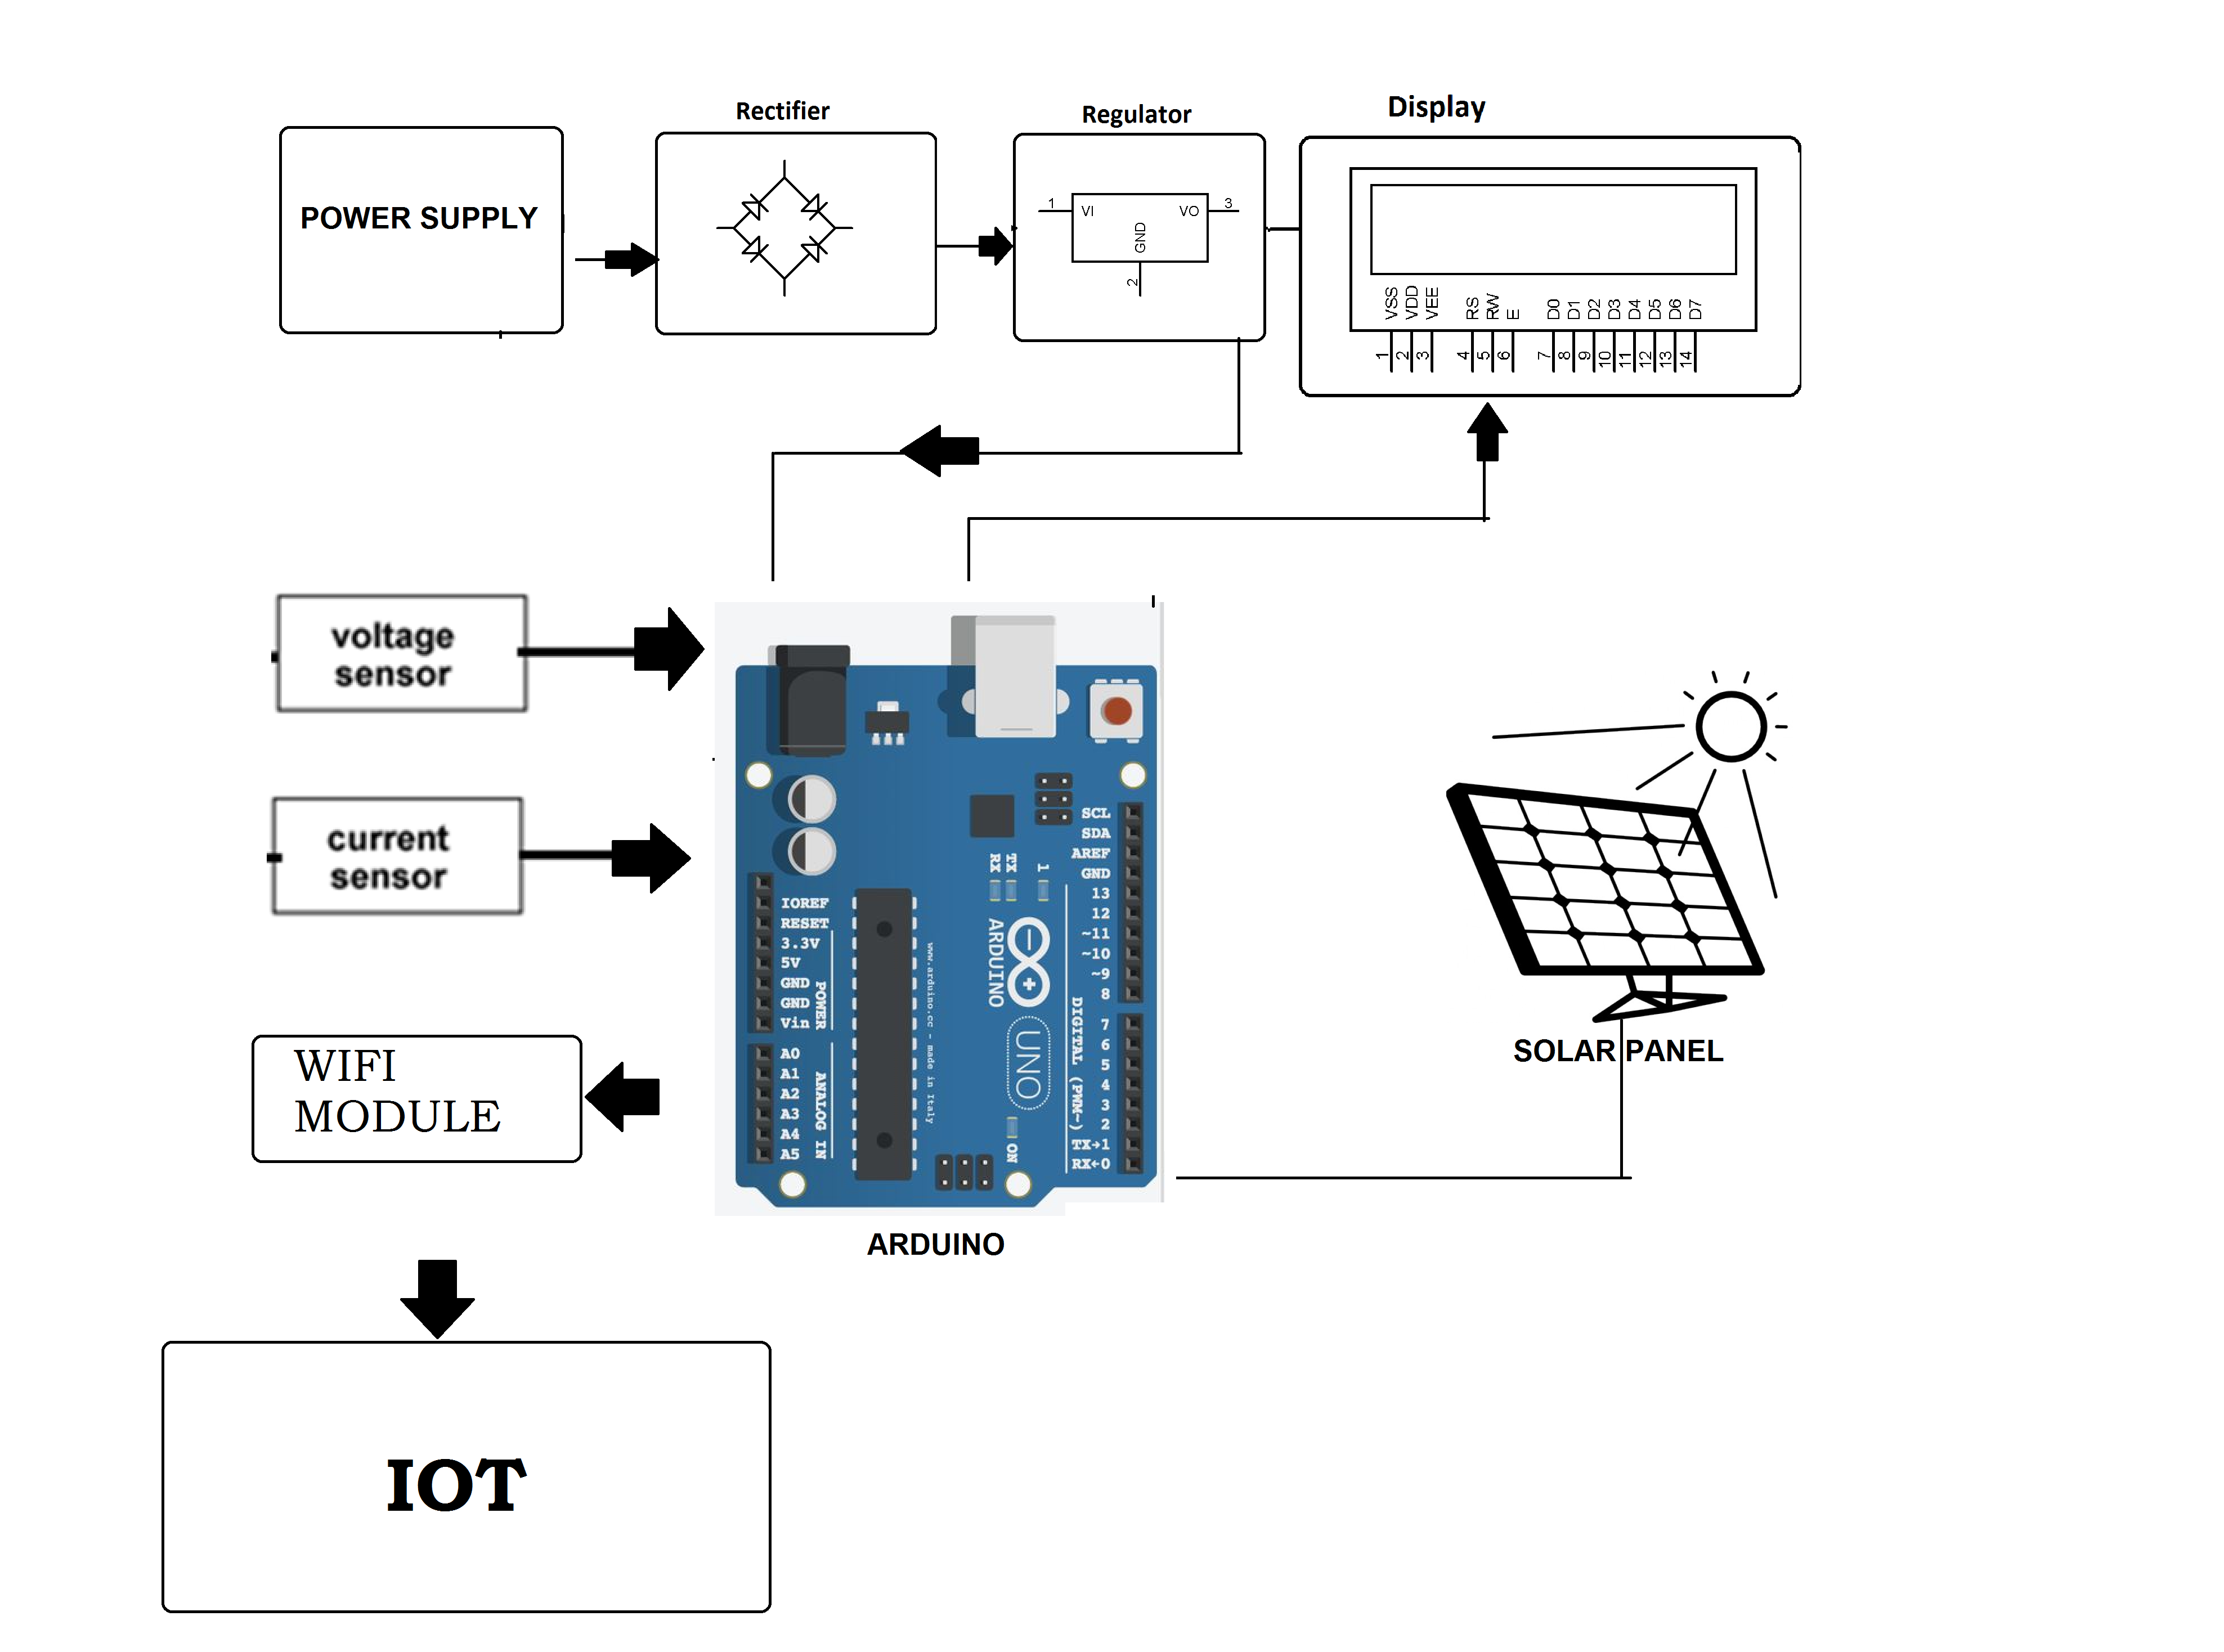 Iot Solar Power Monitoring System Feed Pictures The Diagram For Block